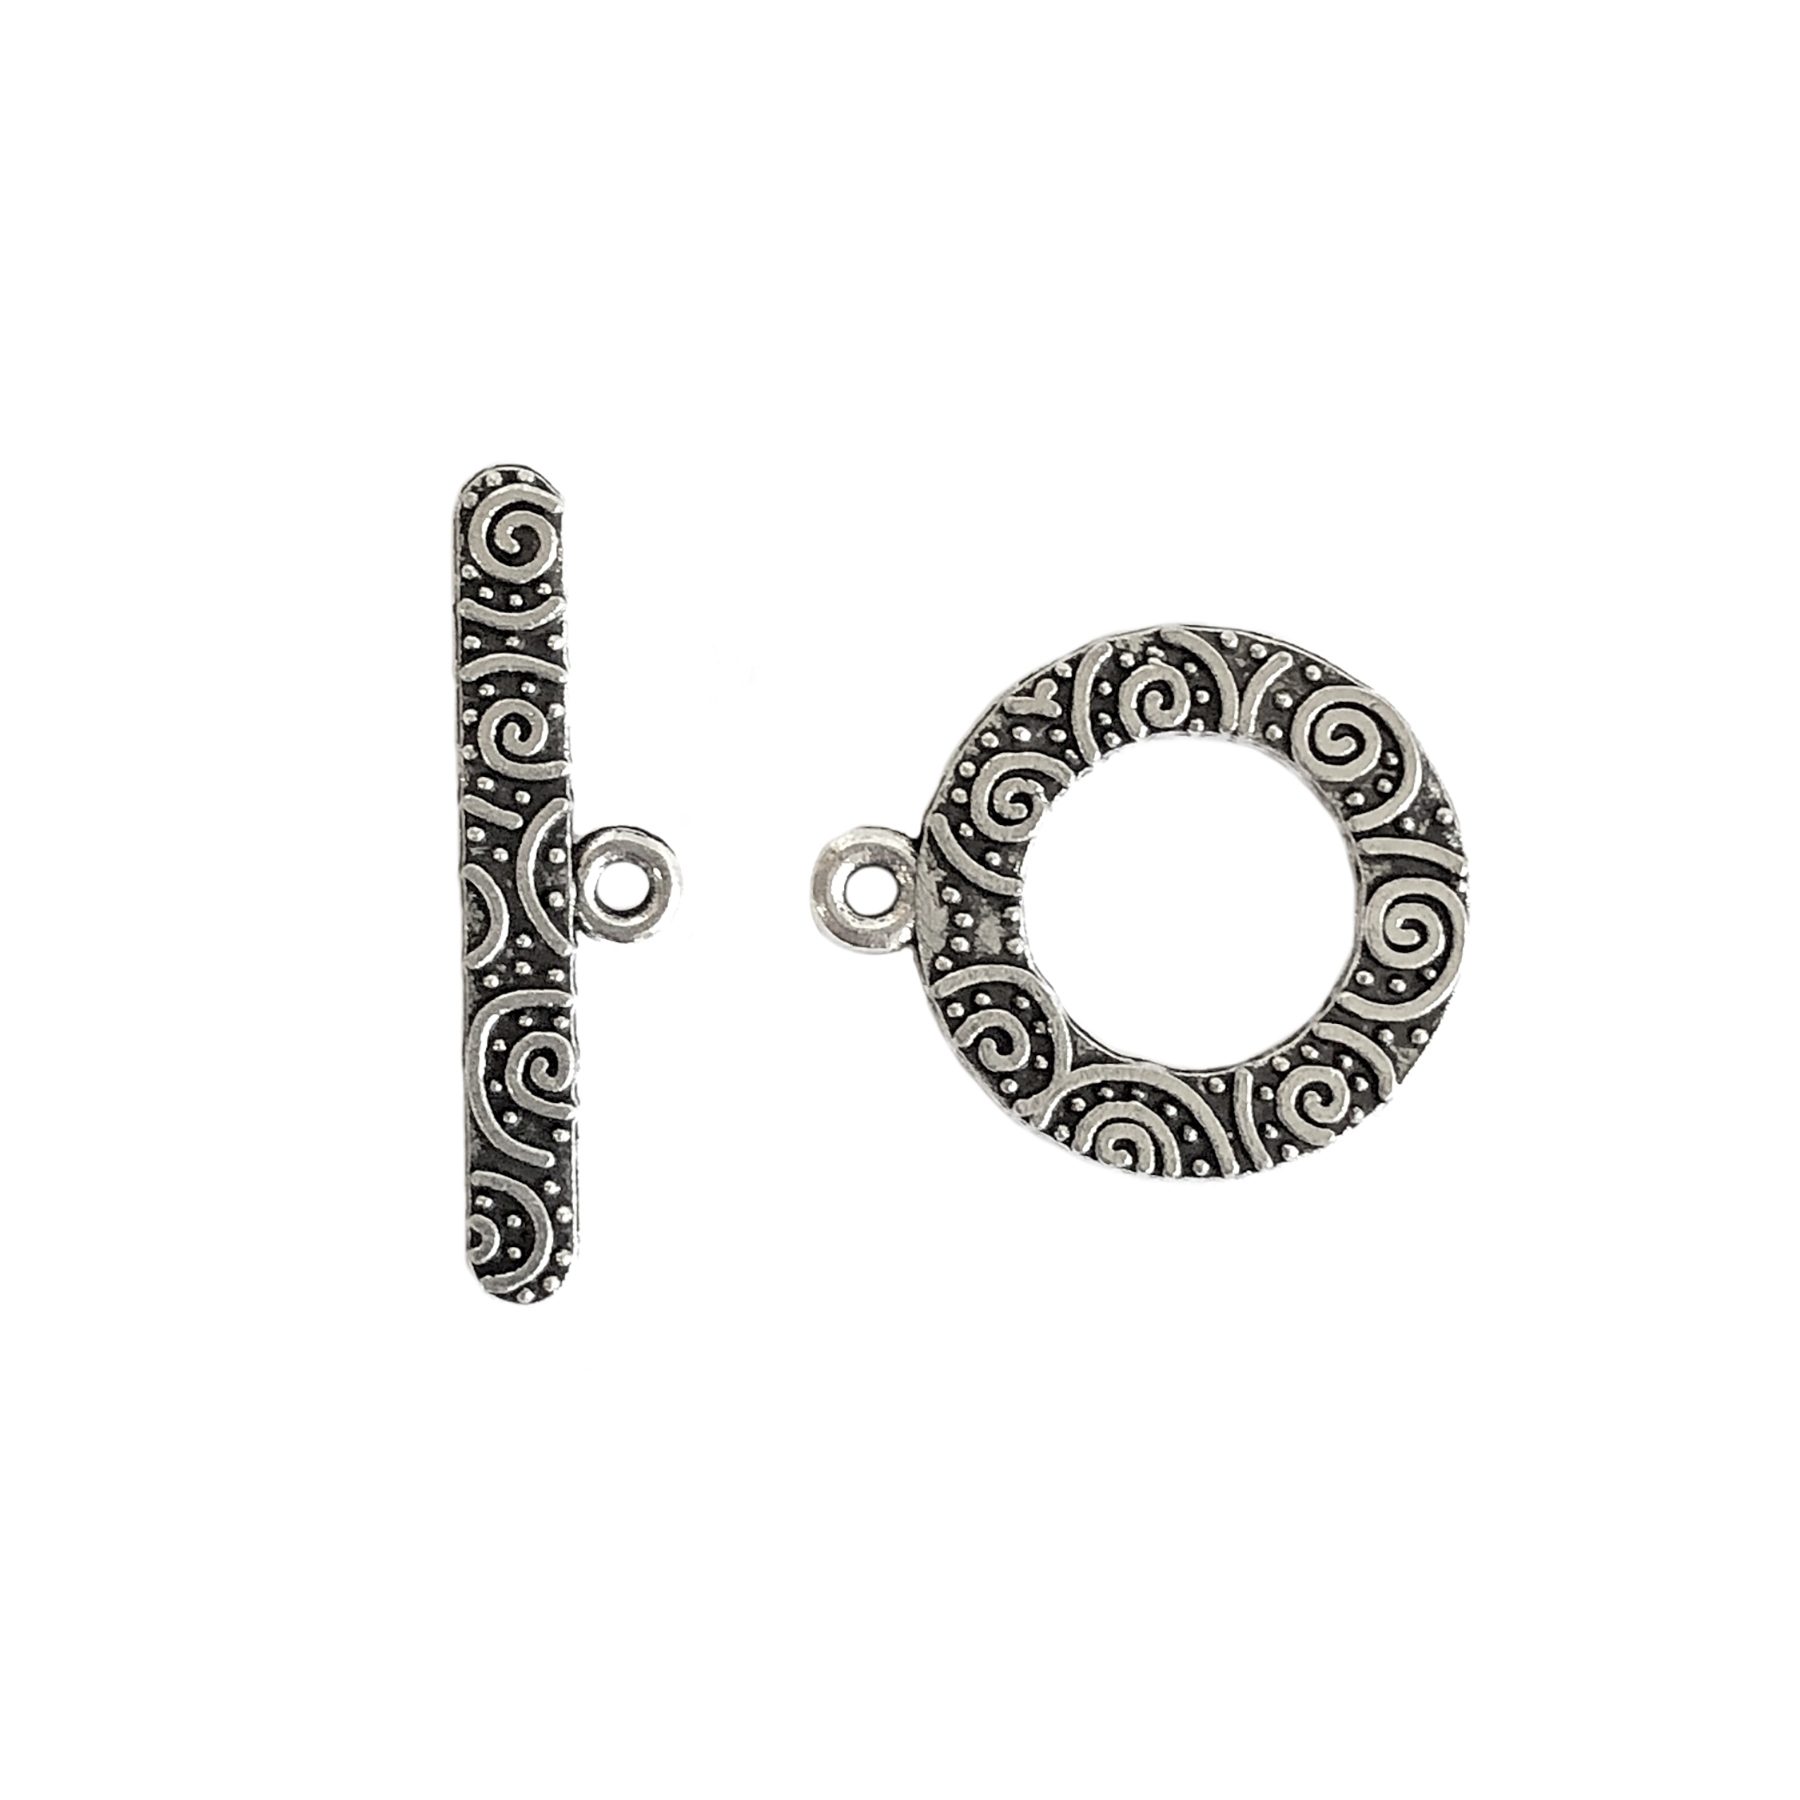 swirl zinc clasp and toggle, antique silver, toggle, clasp, carved design, swirl clasp, zinc alloy, 19-24mm, silver clasp, silver toggle, silver, jewelry clasp, jewelry making, jewelry supplies, vintage supplies, B'sue Boutiques, jewelry findings, 0725